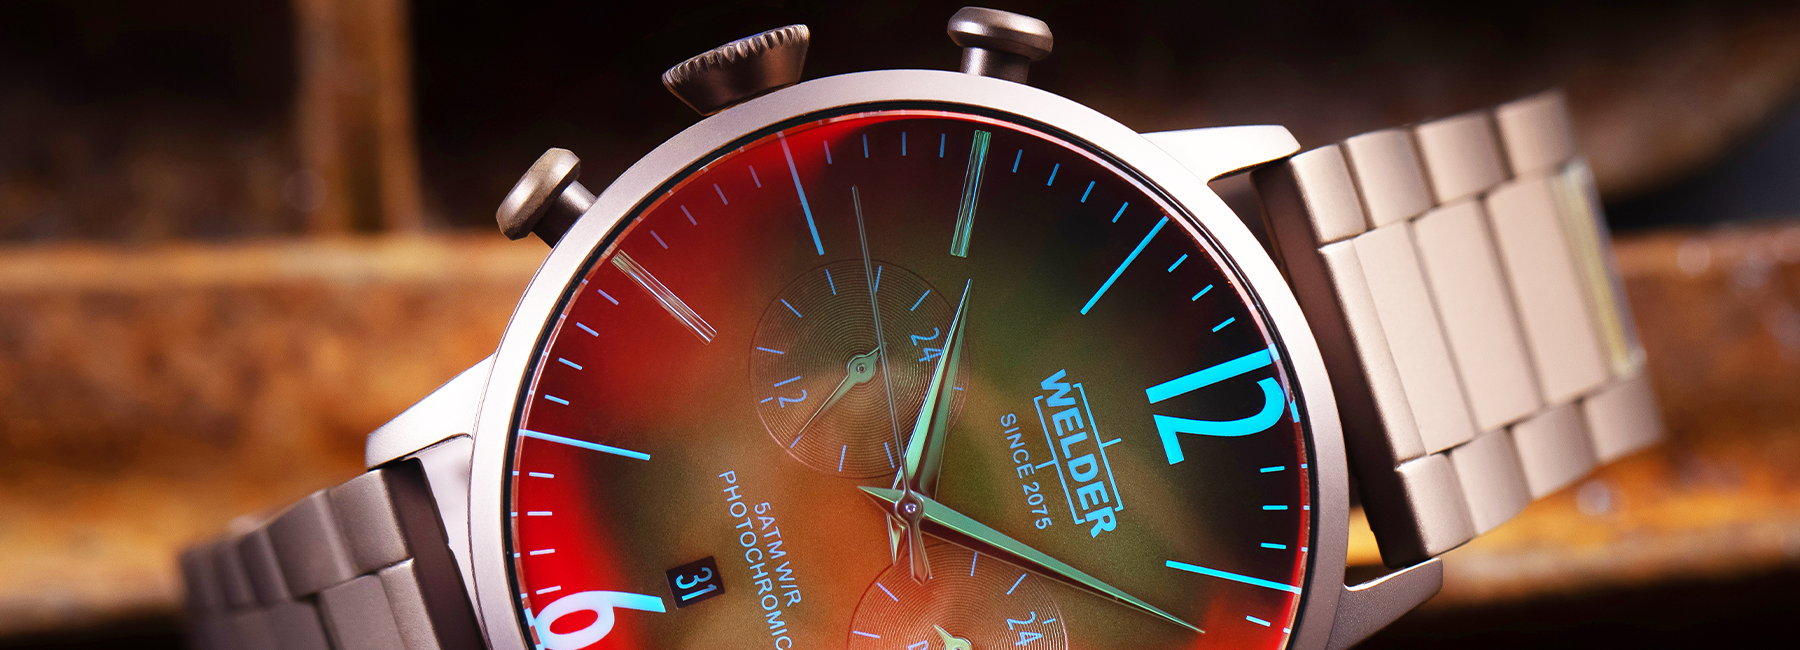 Time to Embrace Change with Your Welder Watch